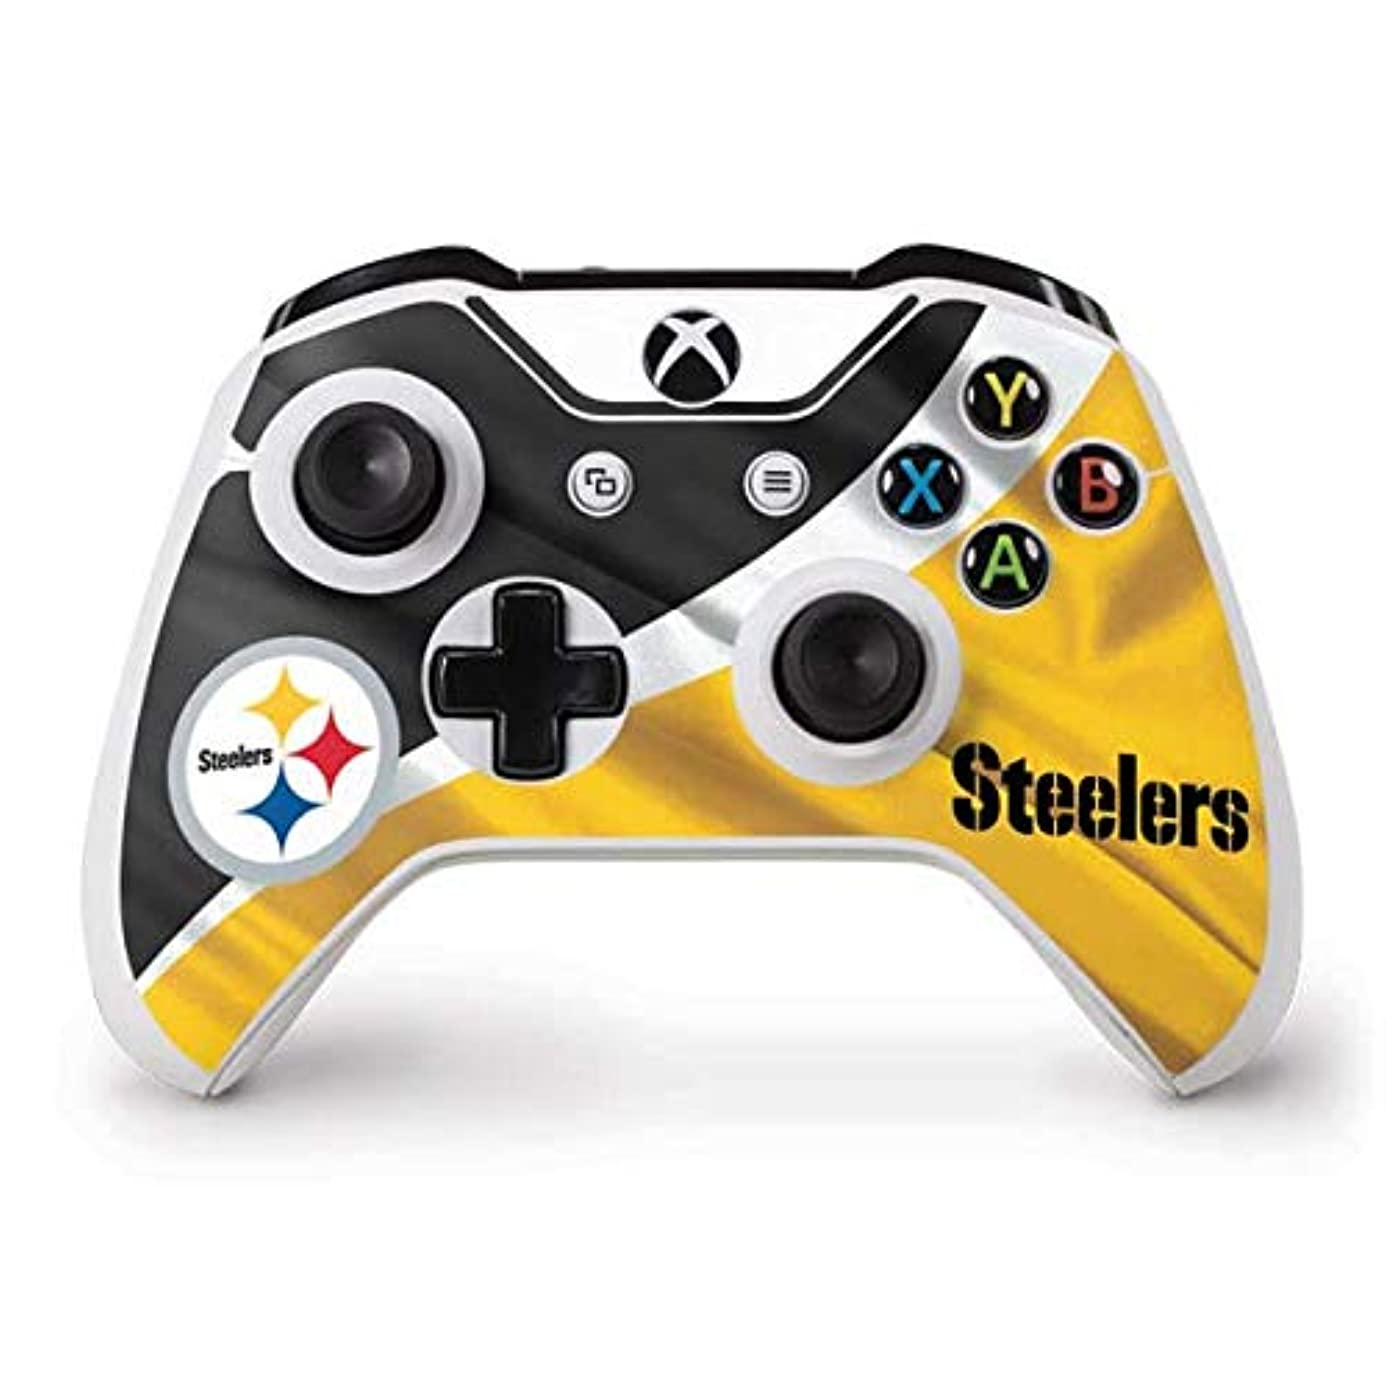 Skinit Pittsburgh Steelers Xbox One S Controller Skin - Officially Licensed NFL Gaming Decal - Ultra Thin, Lightweight Vinyl Decal Protection